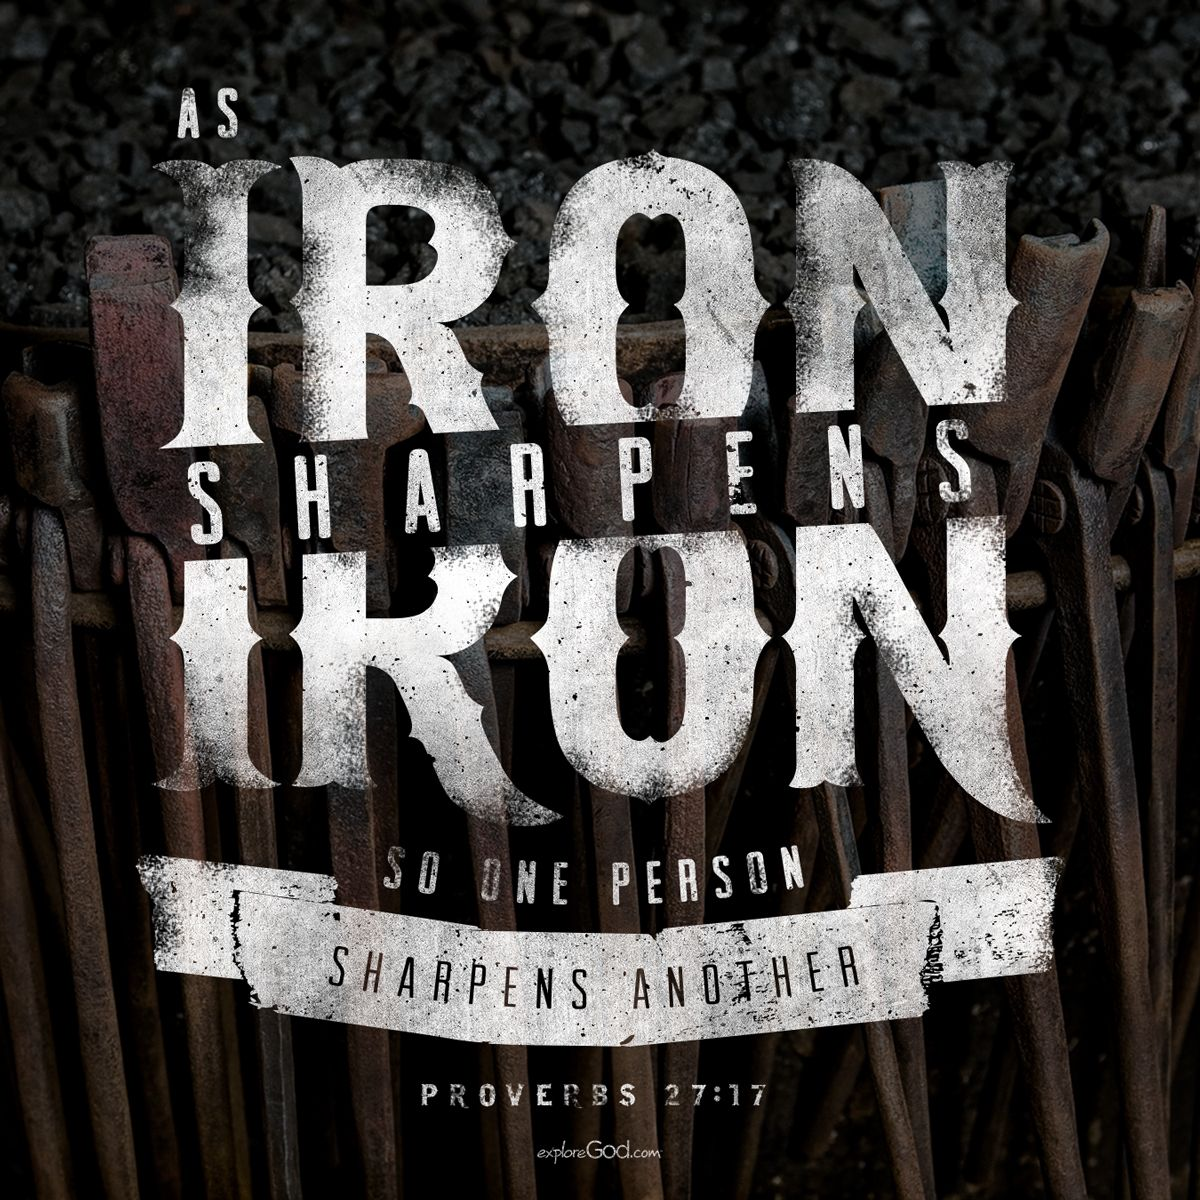 As iron sharpens iron, so one person sharpens another ...